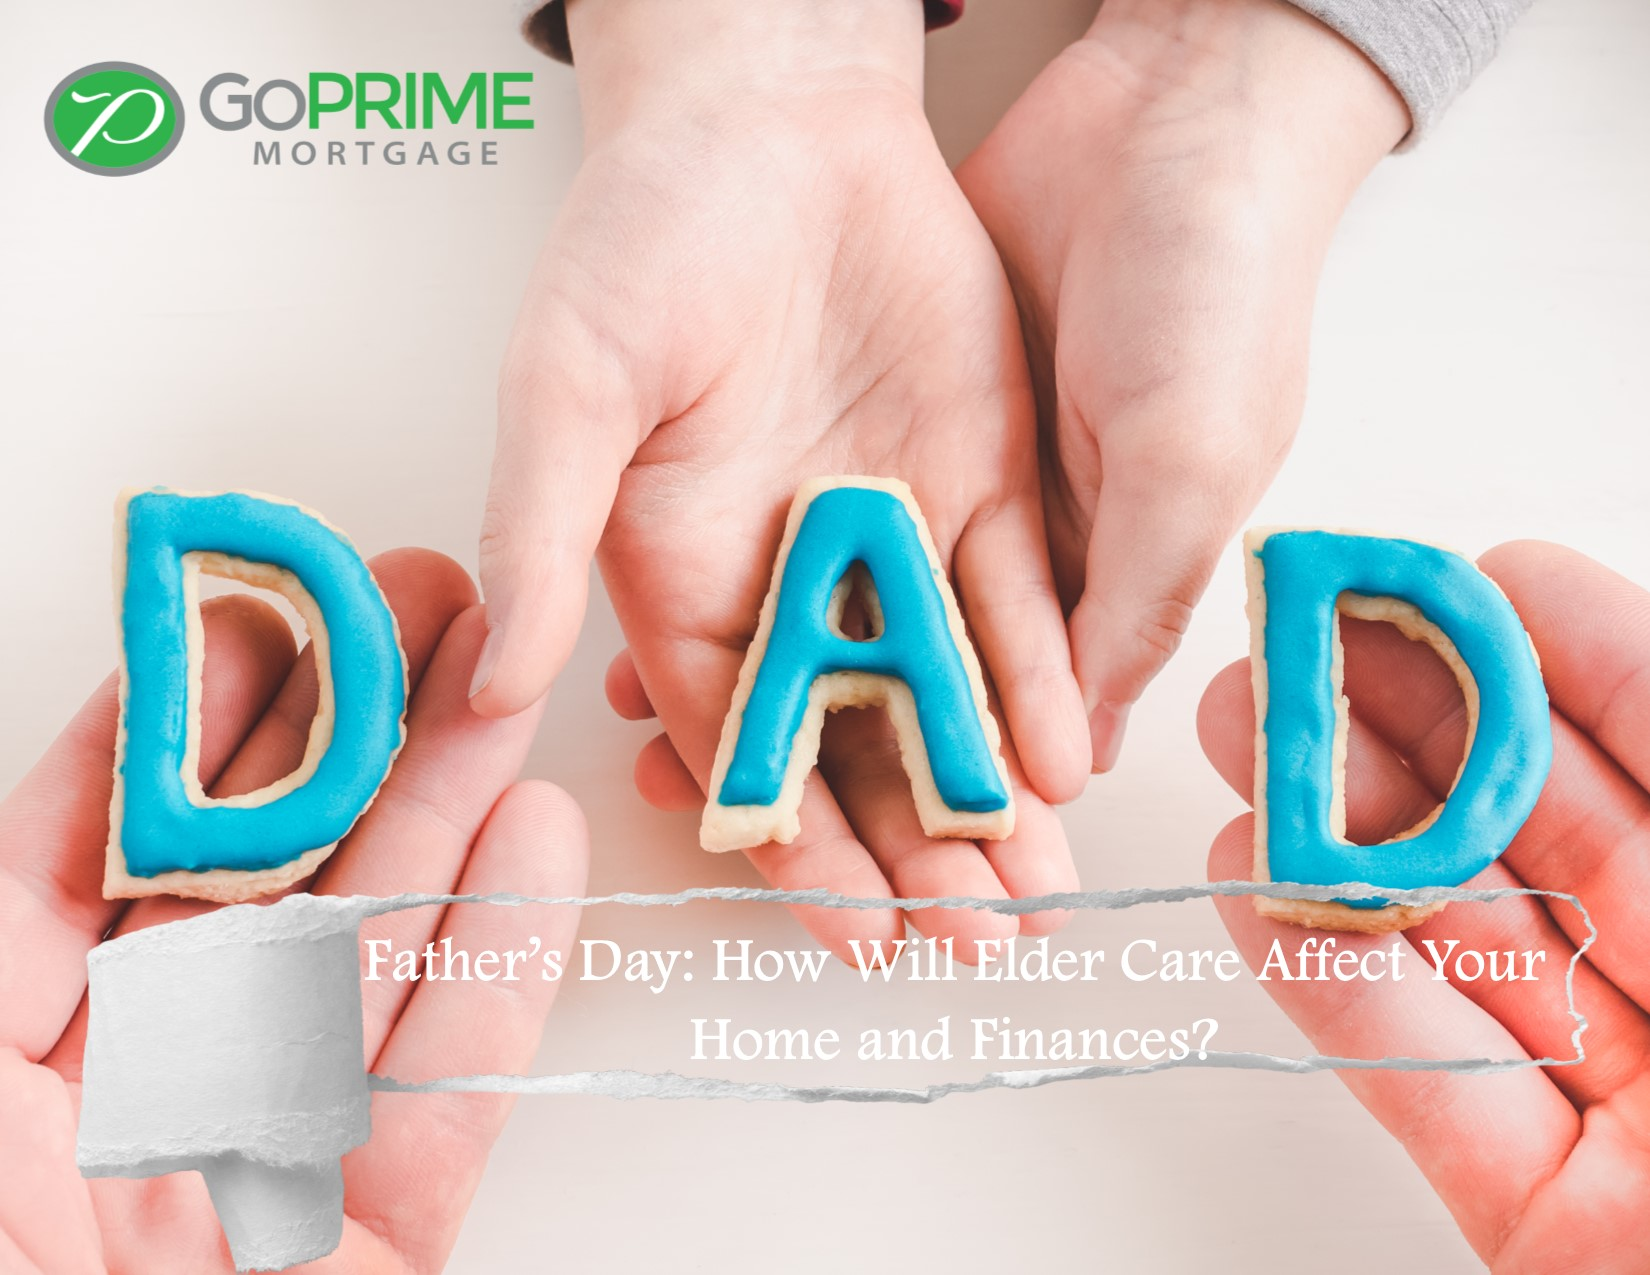 Father's Day How Will Elder Care Affect Your Home and Finances